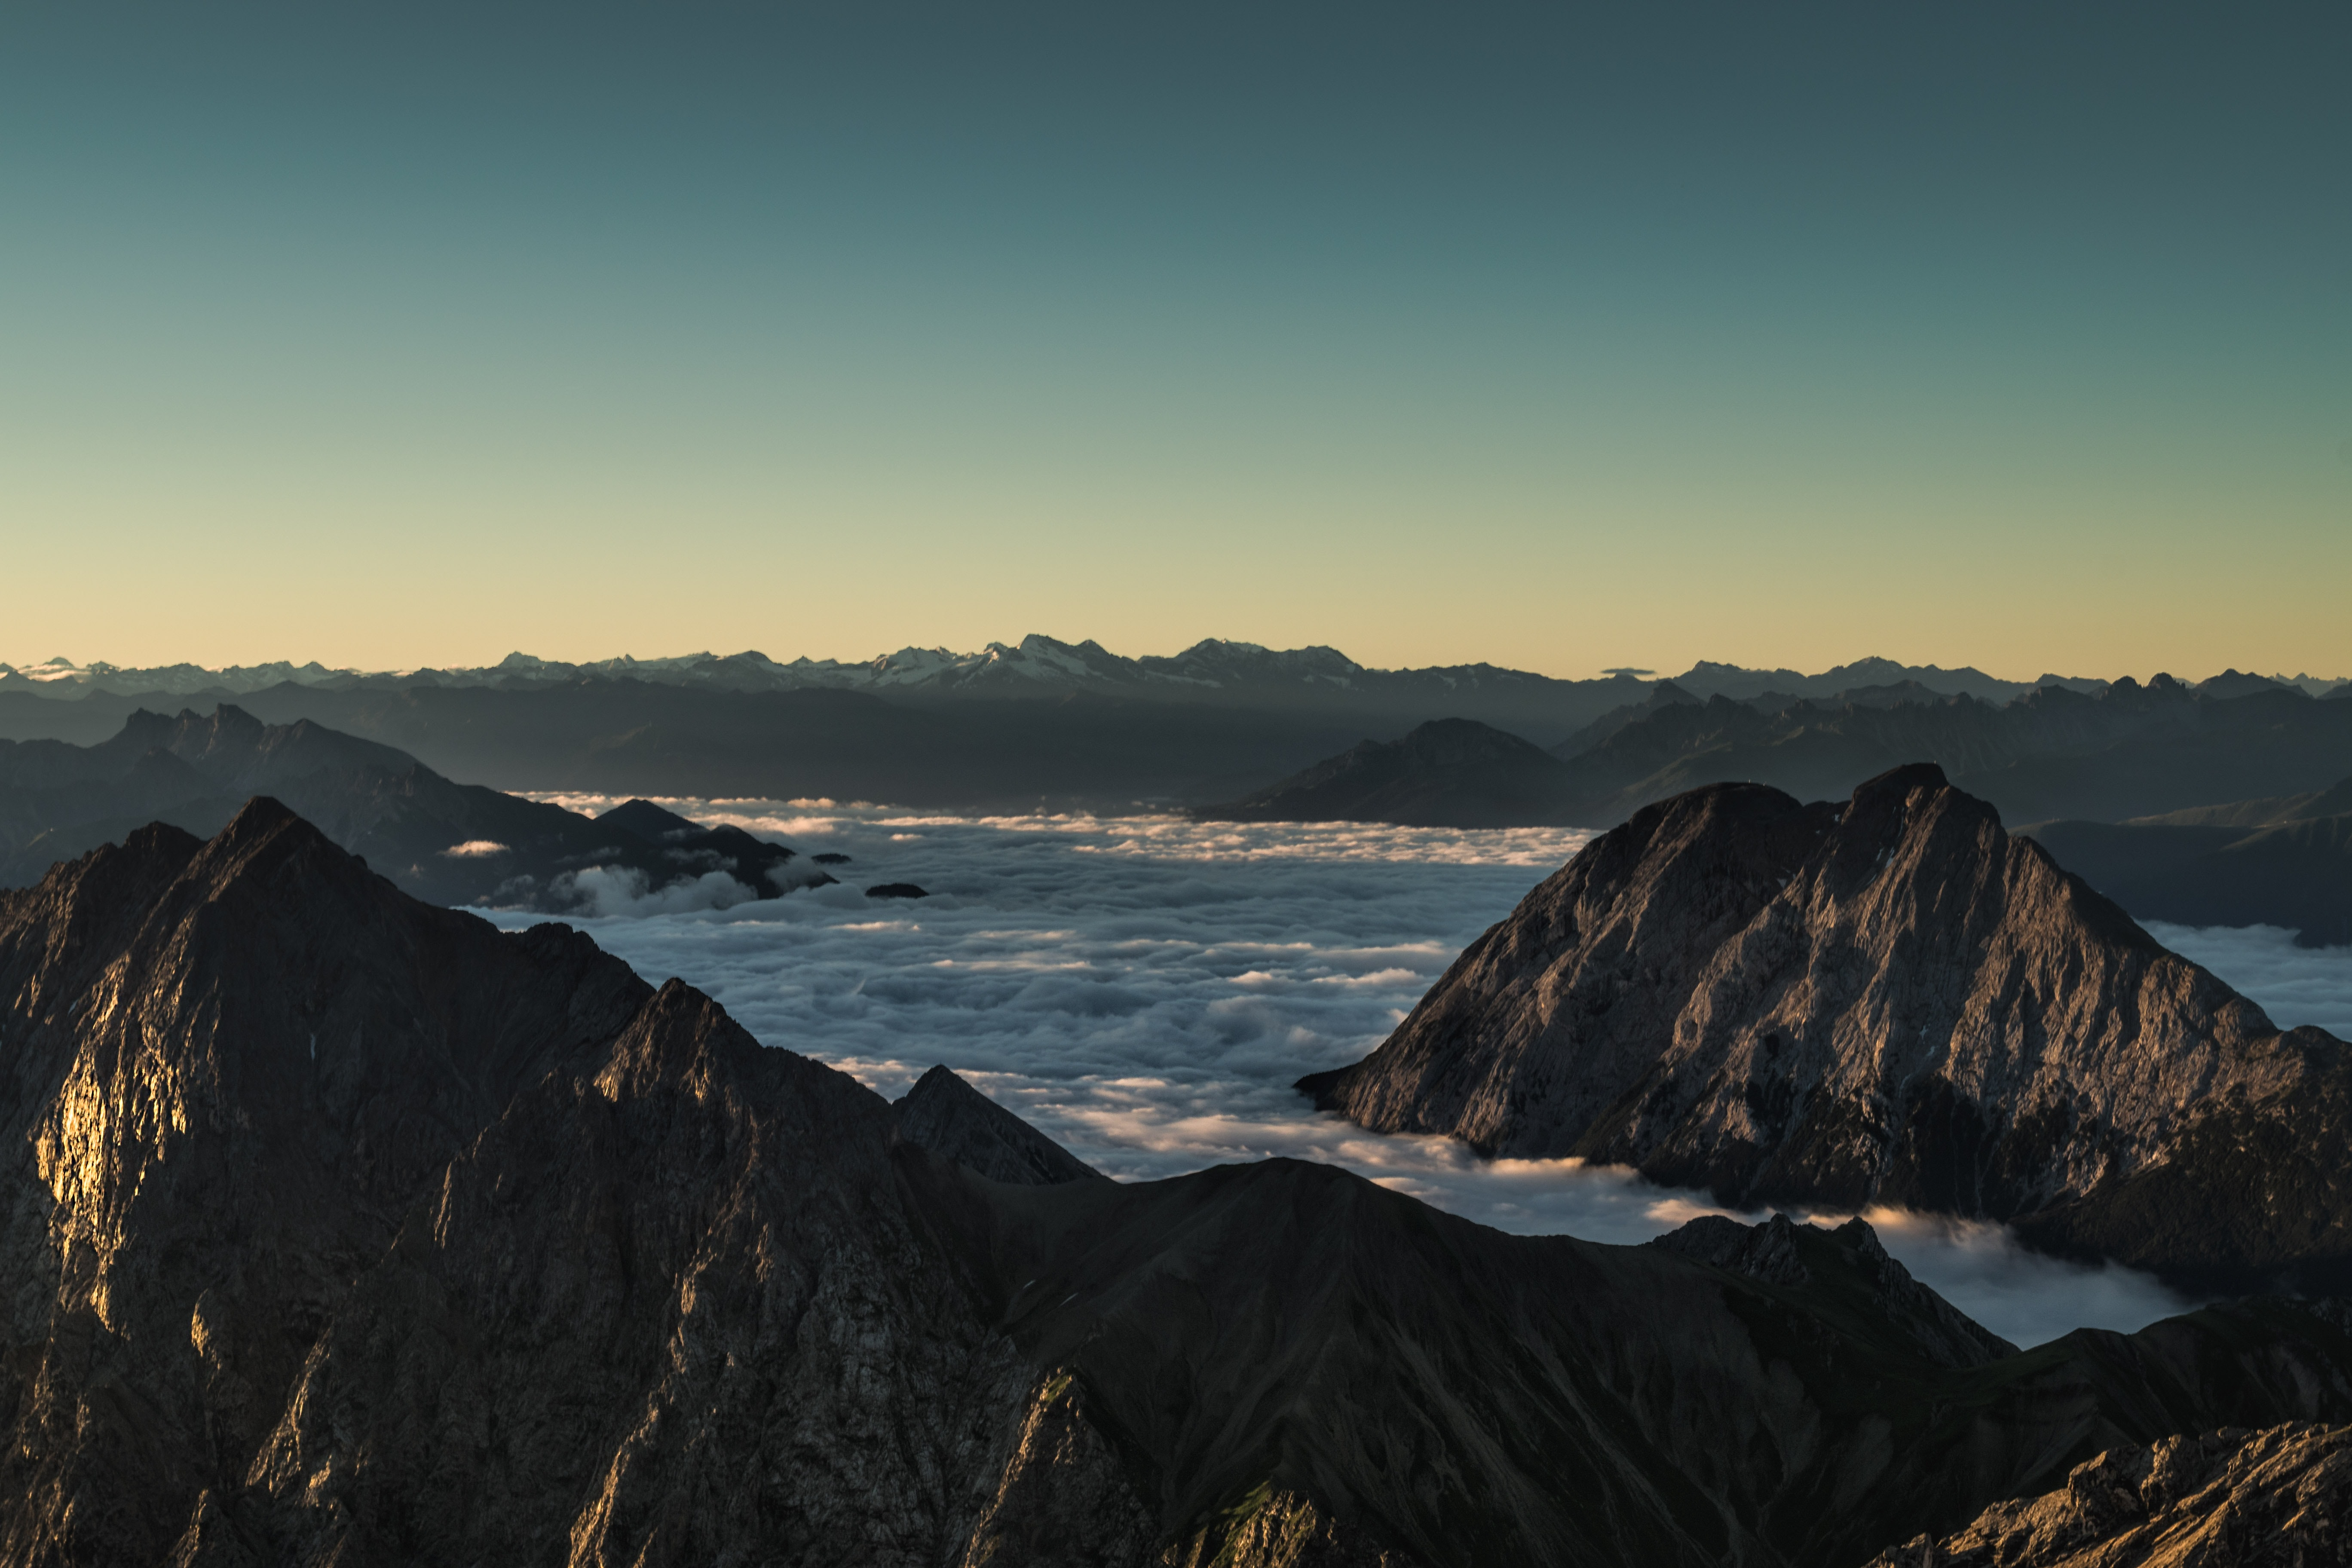 Craggy mountains rising up above clouds during sunrise